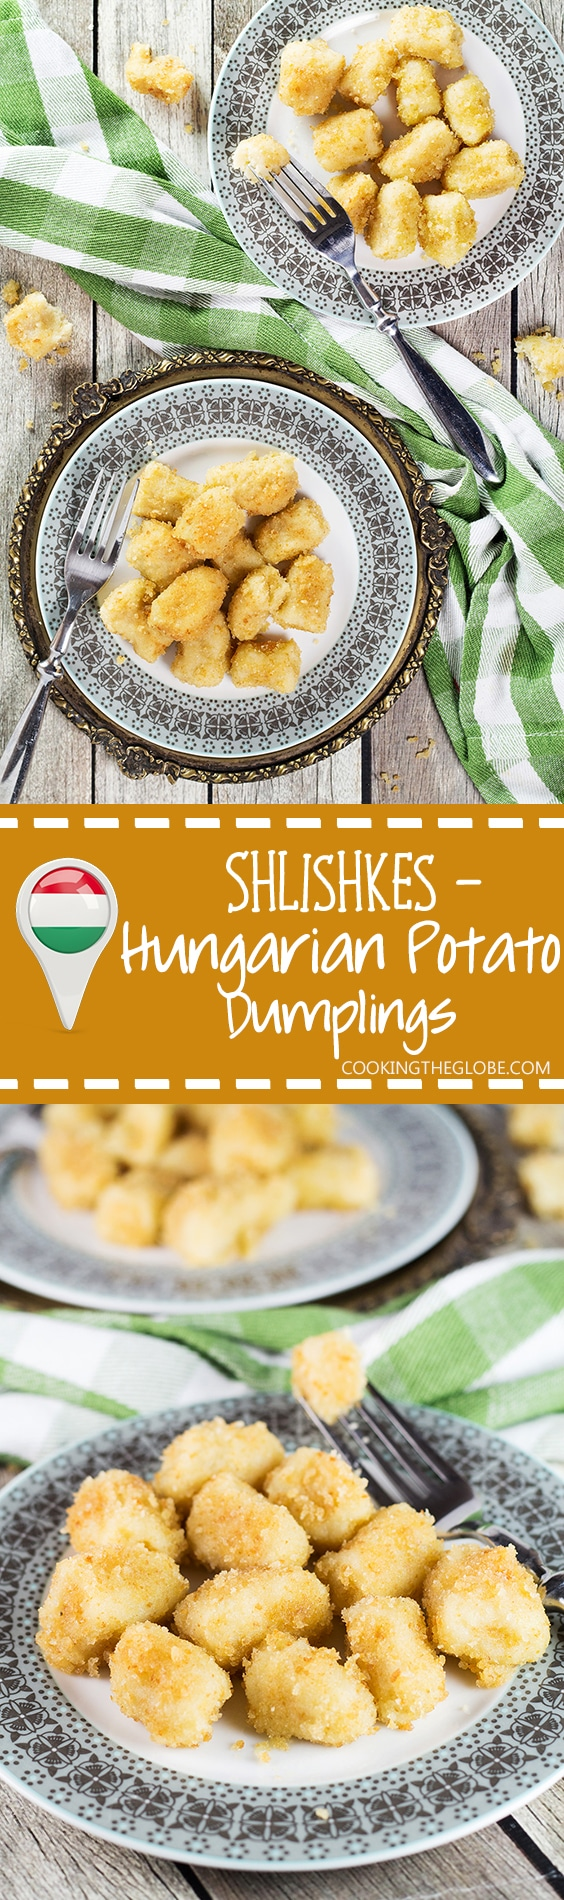 Shlishkes, or Hungarian Potato Dumplings, is a perfect side dish for everyone. These little guys are made with mashed potatoes and covered in buttered bread crumbs! | cookingtheglobe.com